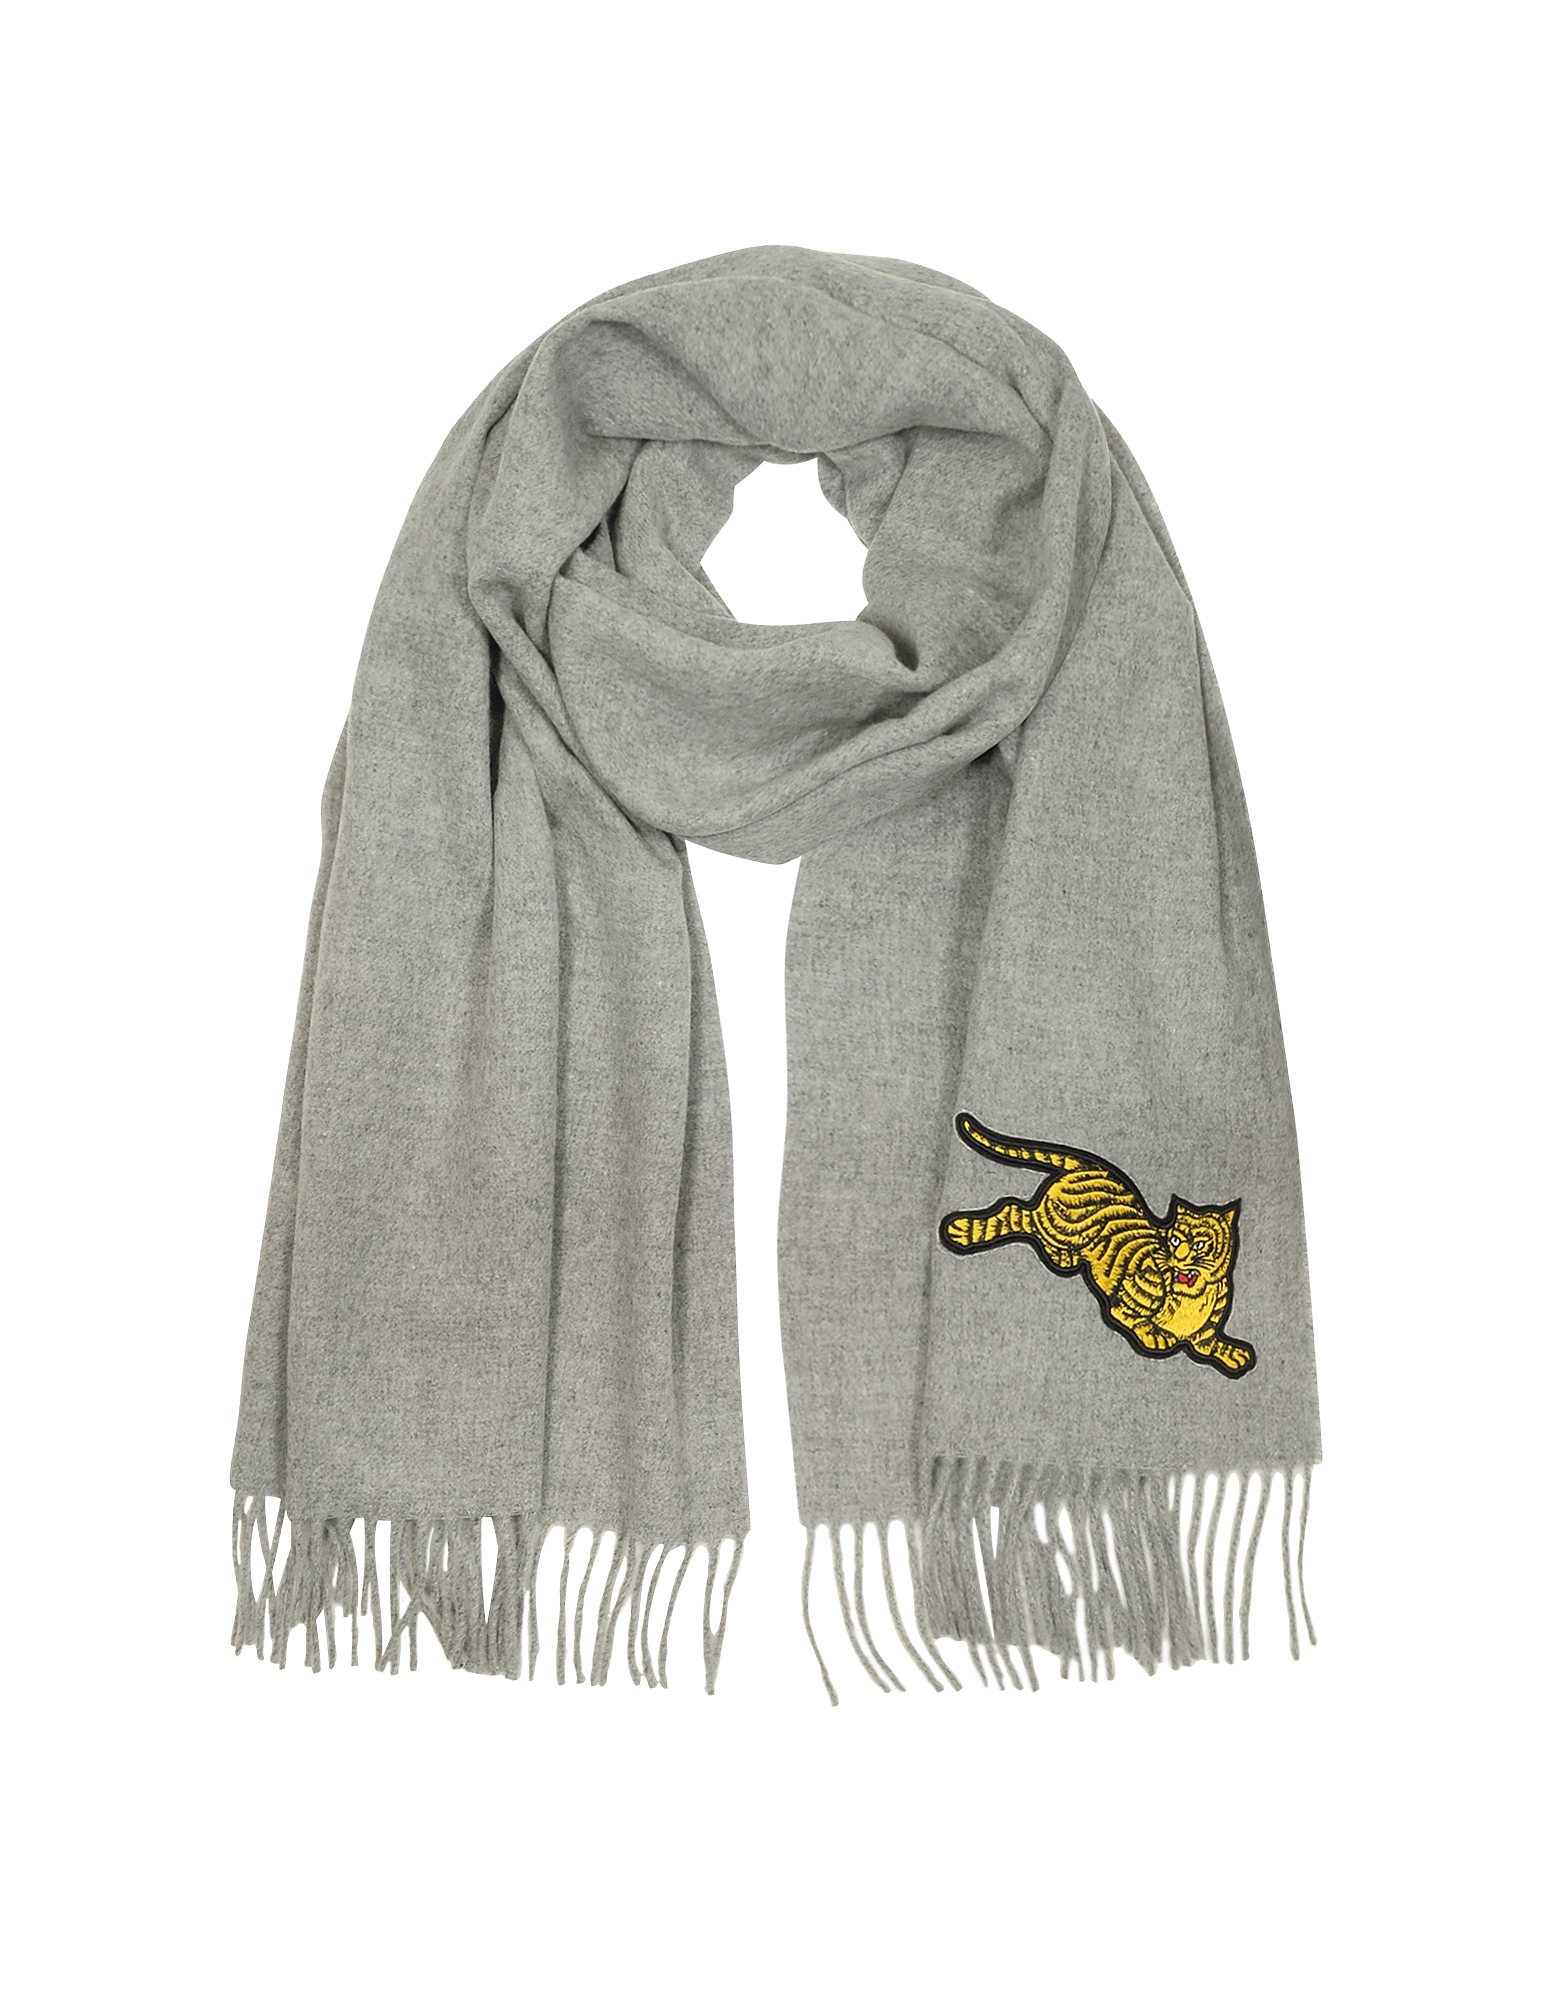 Kenzo Men's Scarves, Jumping Tiger Fringed Wool Scarf